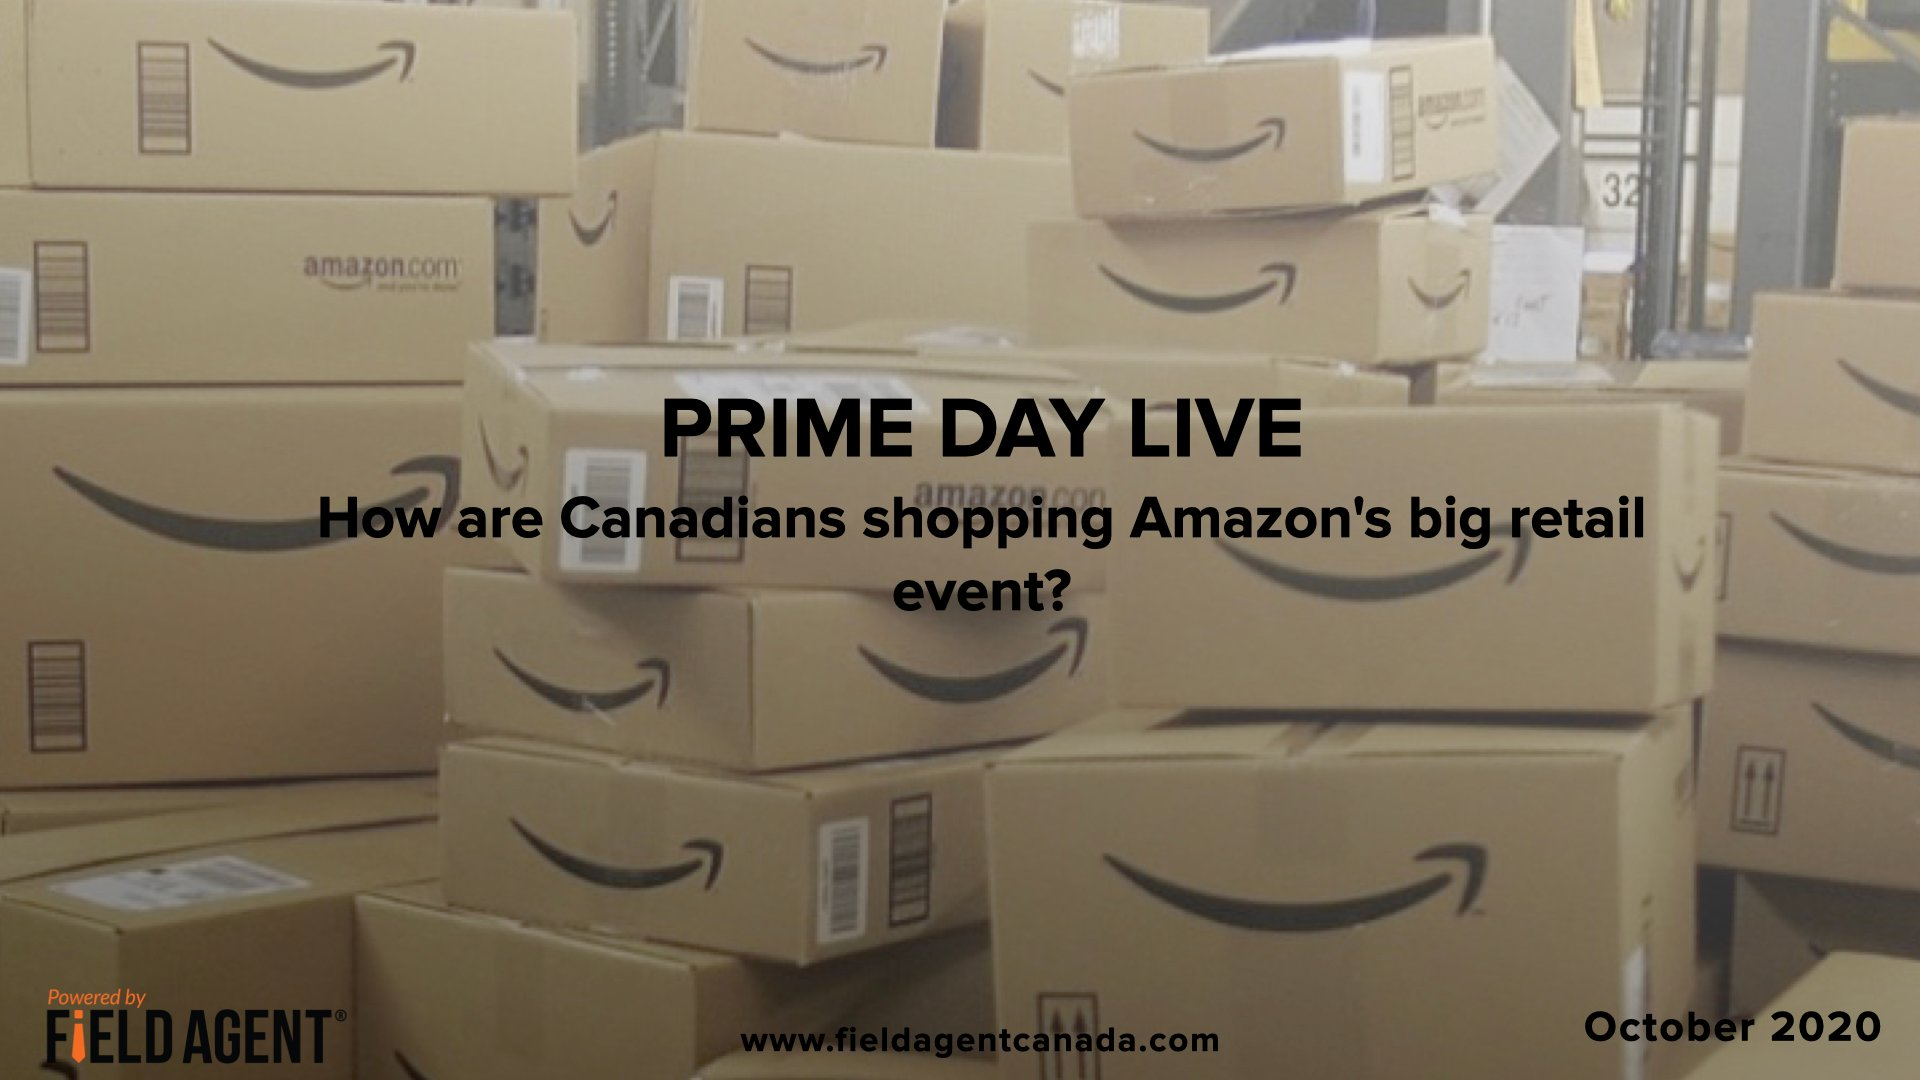 Field Agent brings you Prime Day live